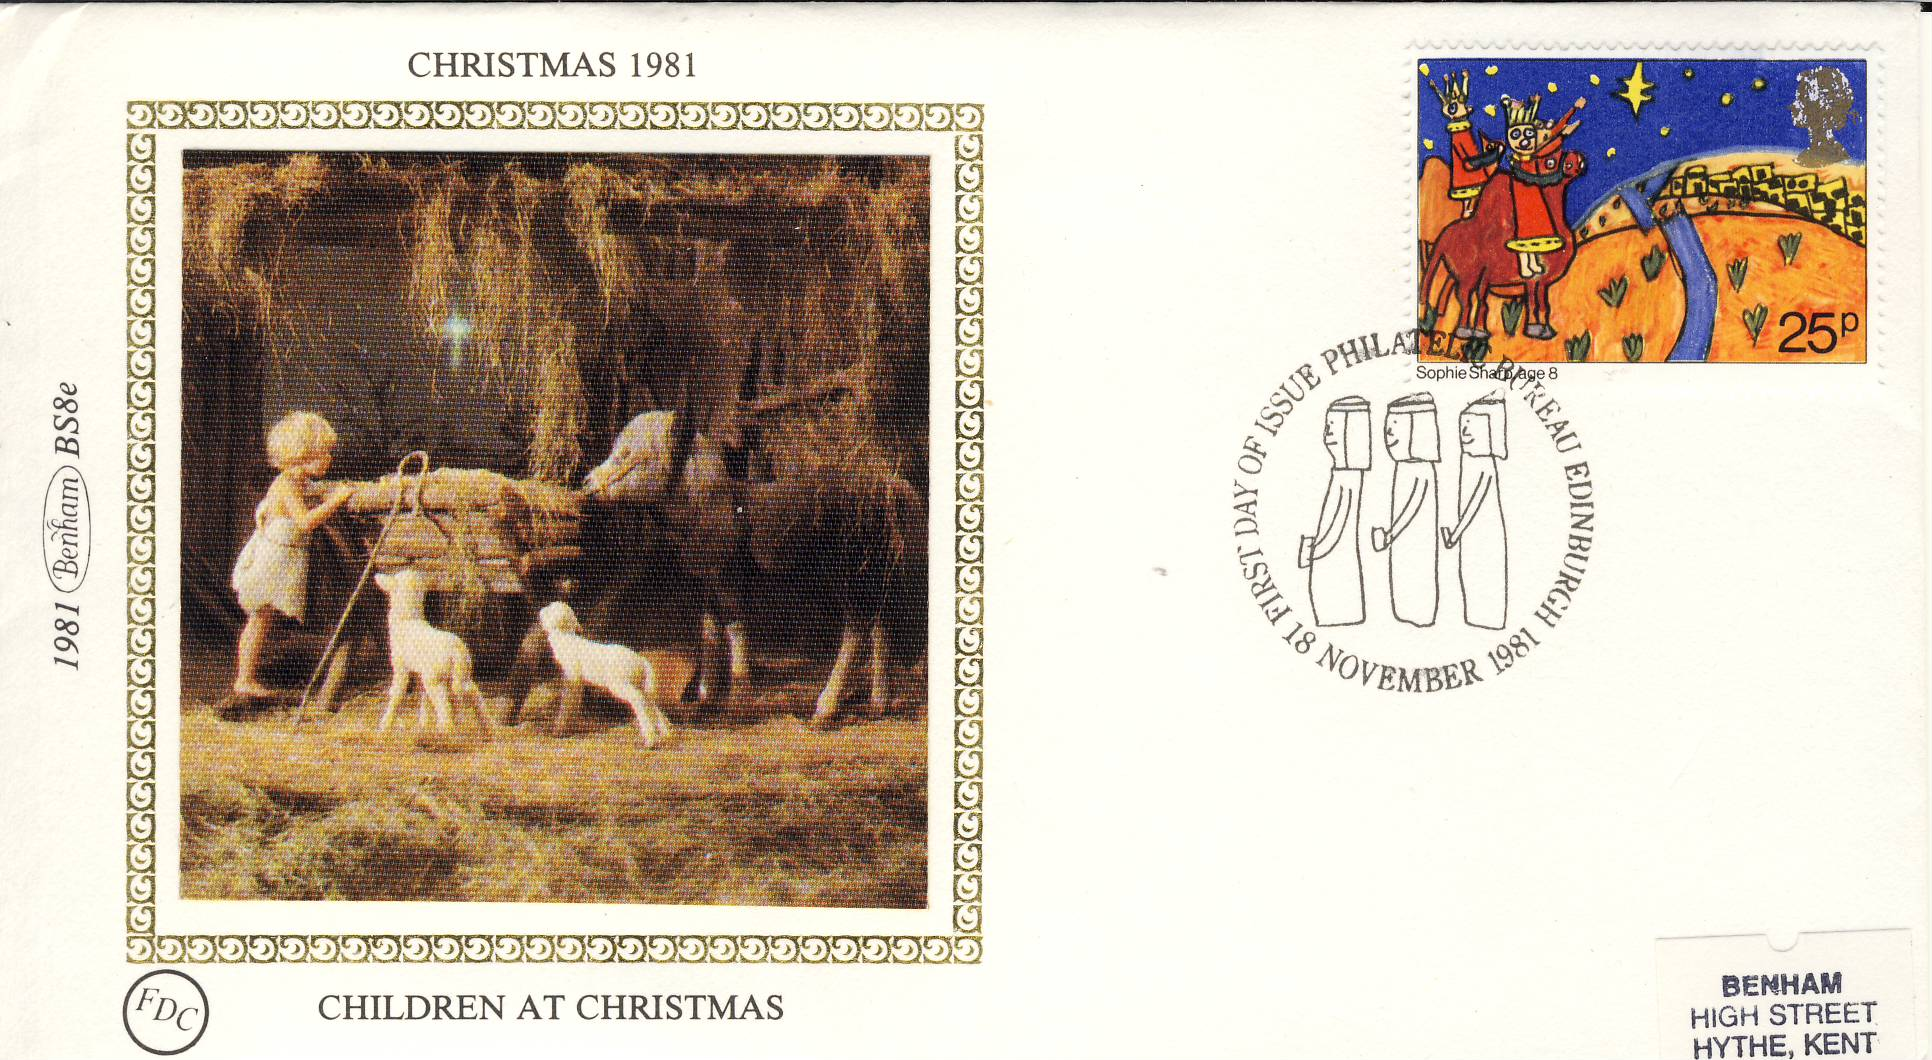 1981 CHRISTMAS BS8e CHILDREN FDC Benham Sm Silk Cover refF479Postmarked Three Kings. Good condition. Unsealed with insert card. Ideal for gift